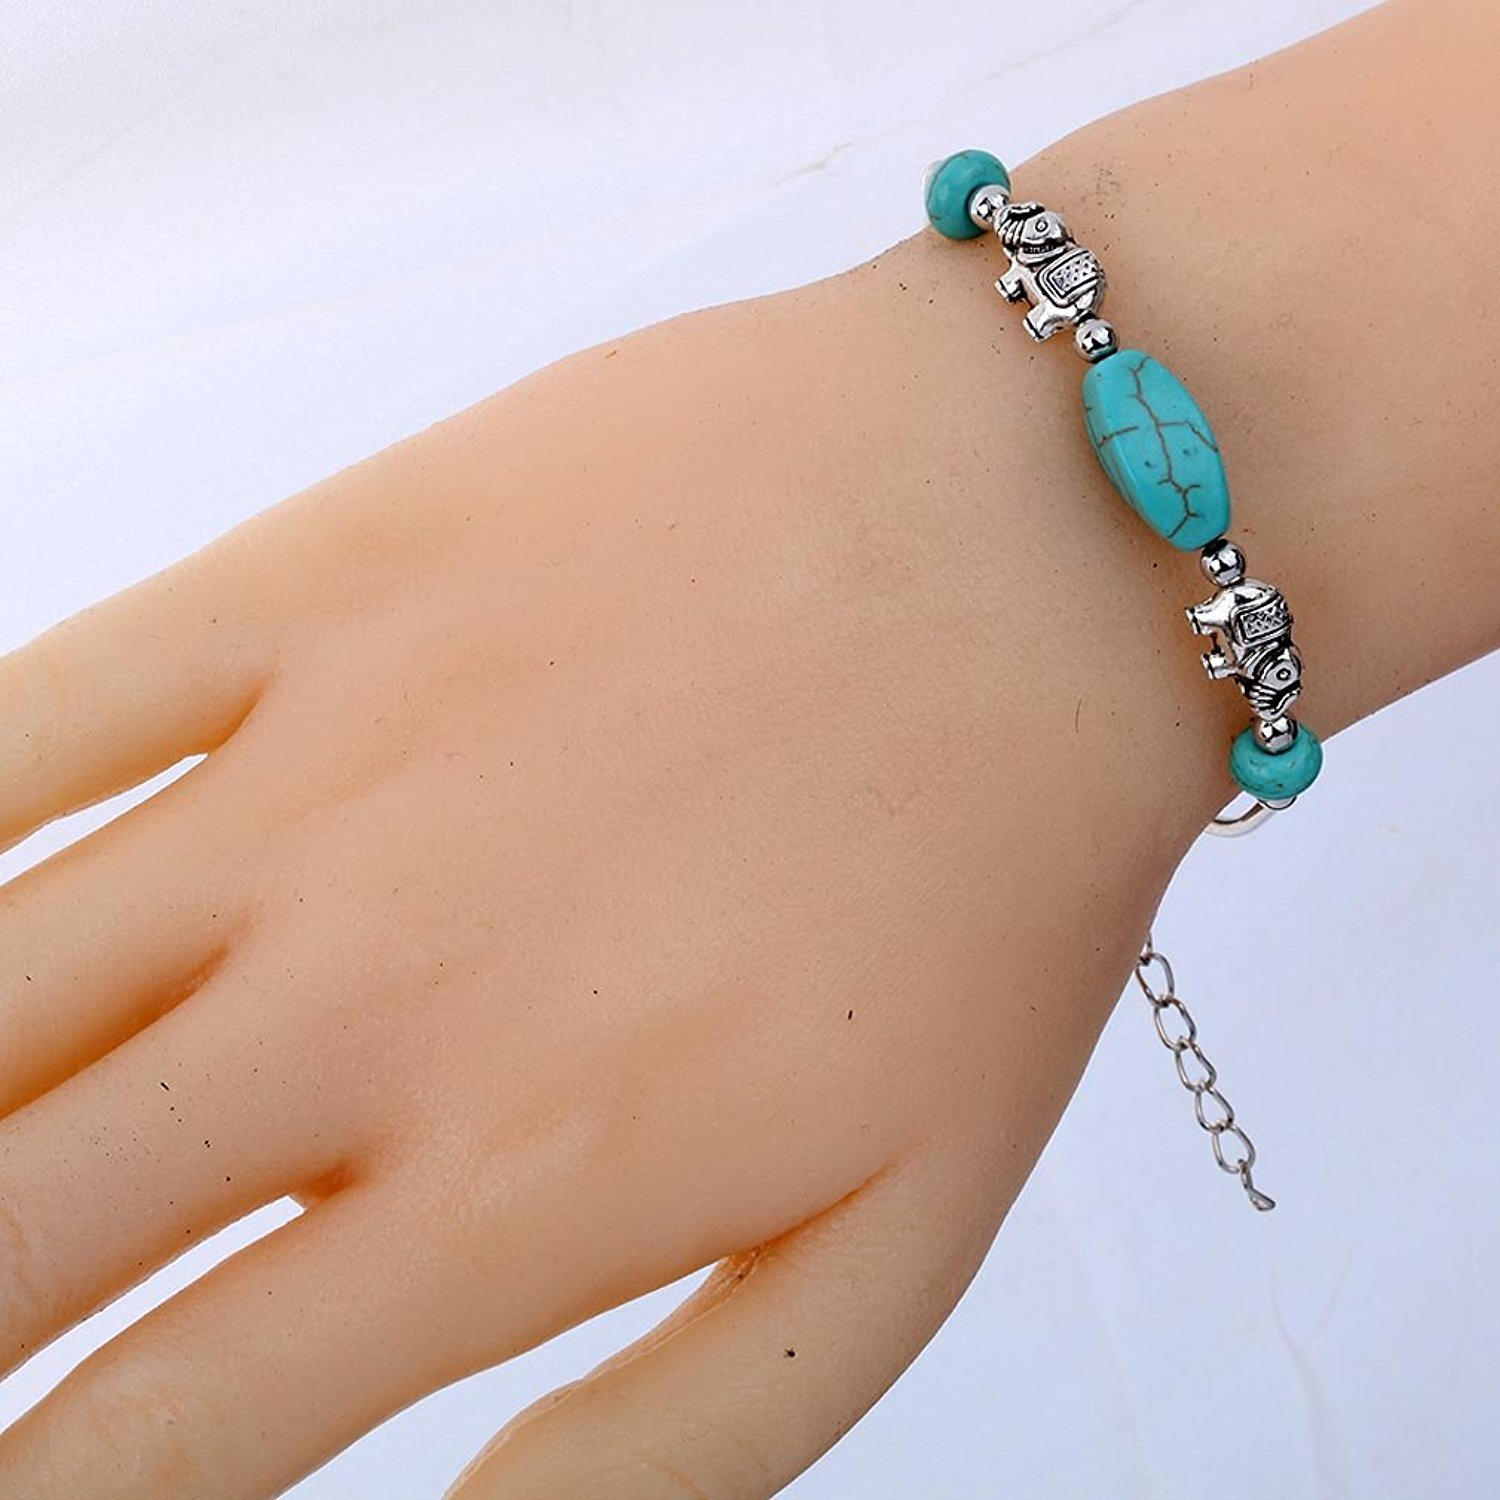 DVANIS Cute Elephant Shape Adjustable Chain Silver Tibetan Handmade Pearl Beads Bangle Bracelet